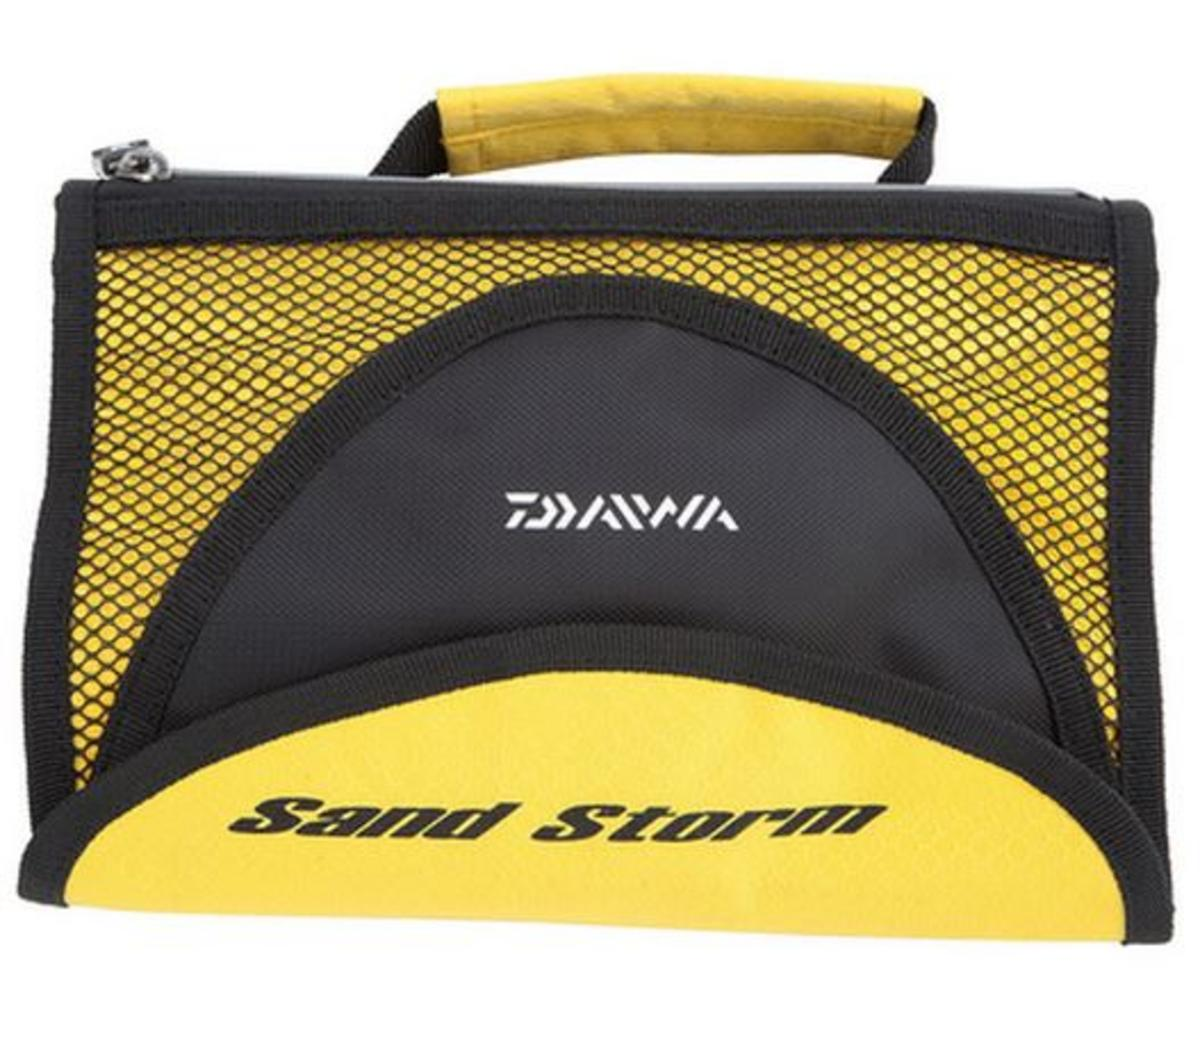 New Daiwa Sandstorm Sea Rig Wallet - Large - DSSRW-1